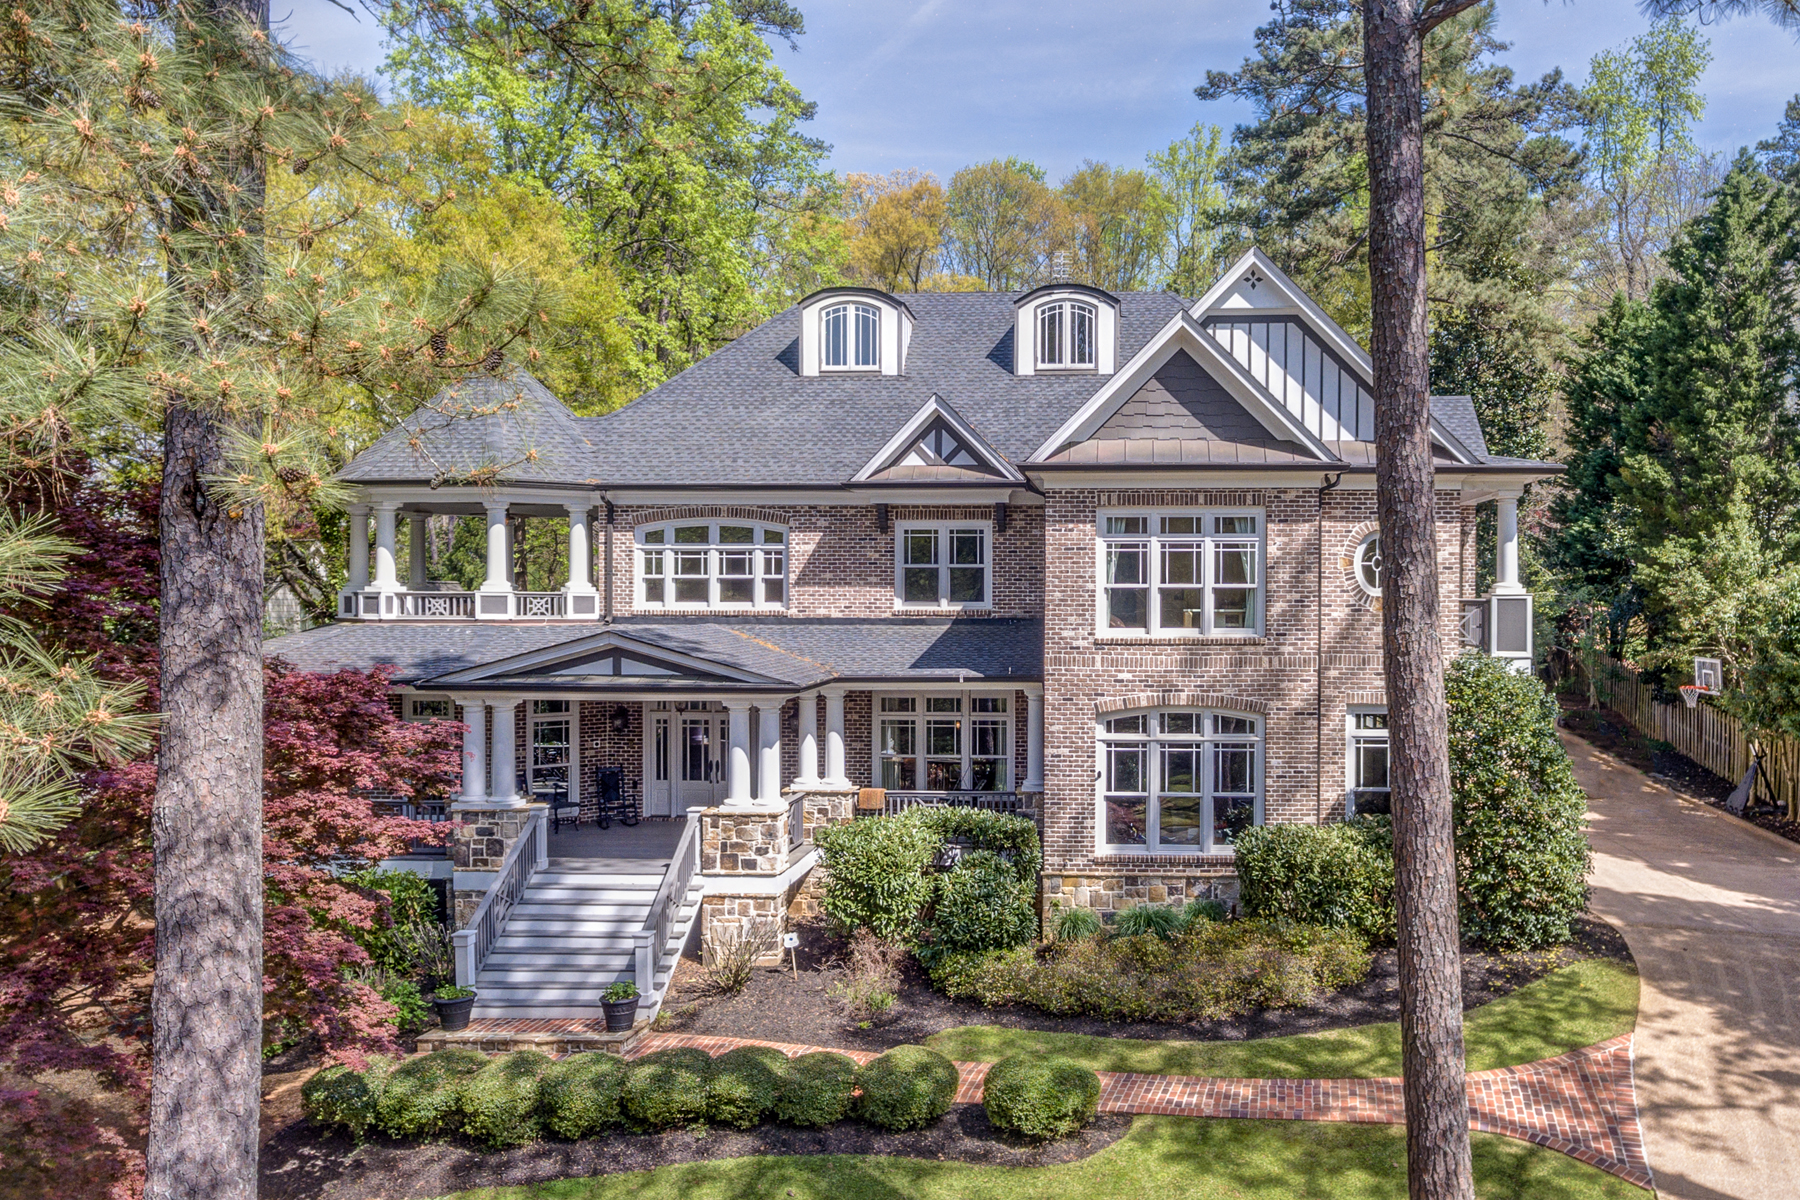 Eensgezinswoning voor Verkoop op Beautiful Custom Home On Secluded One Acre Lot In Brookhaven 4650 Club Valley Dr Atlanta, Georgië 30319 Verenigde Staten